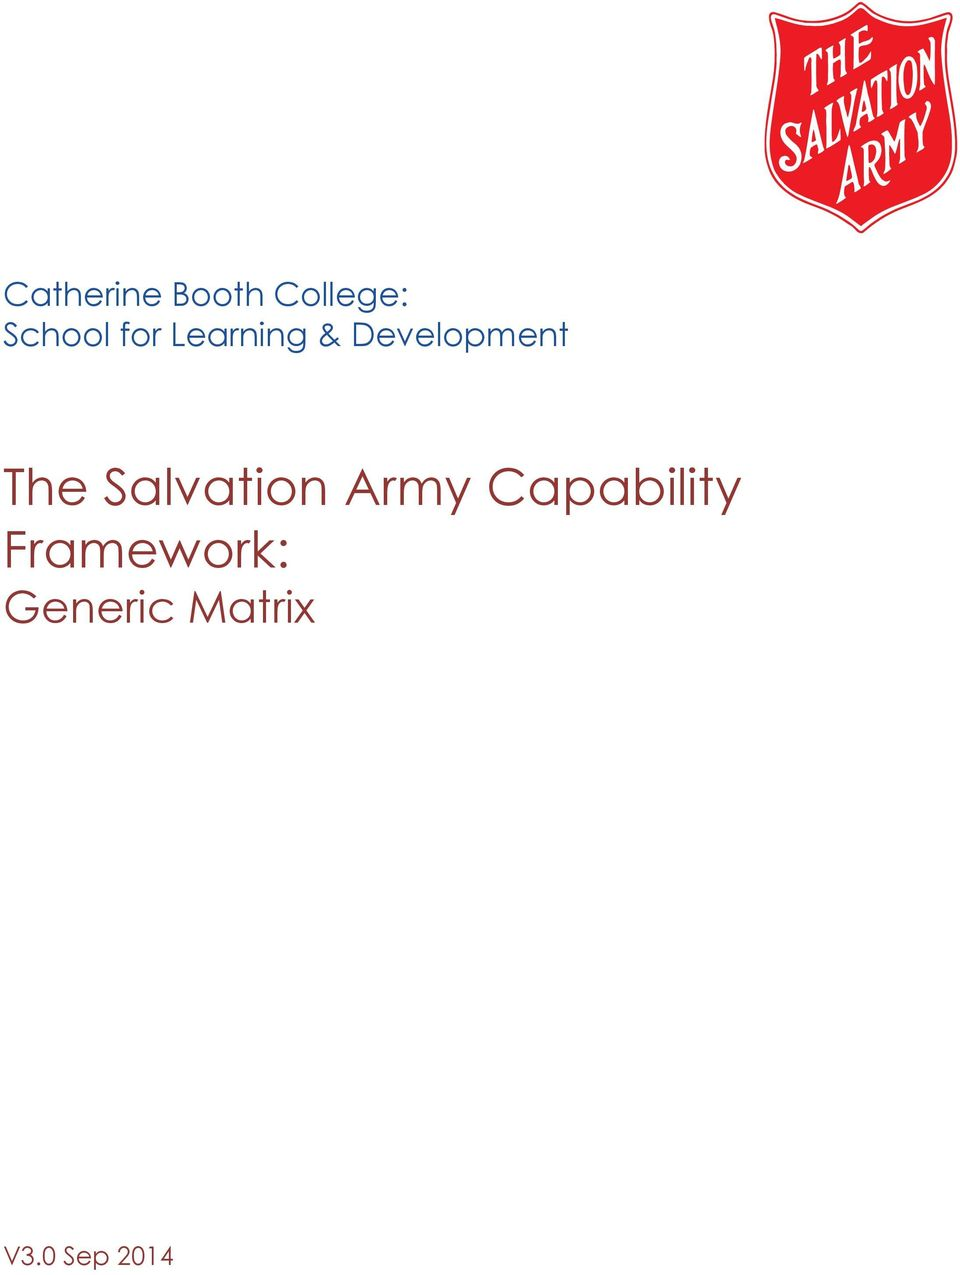 Salvation Army Capability